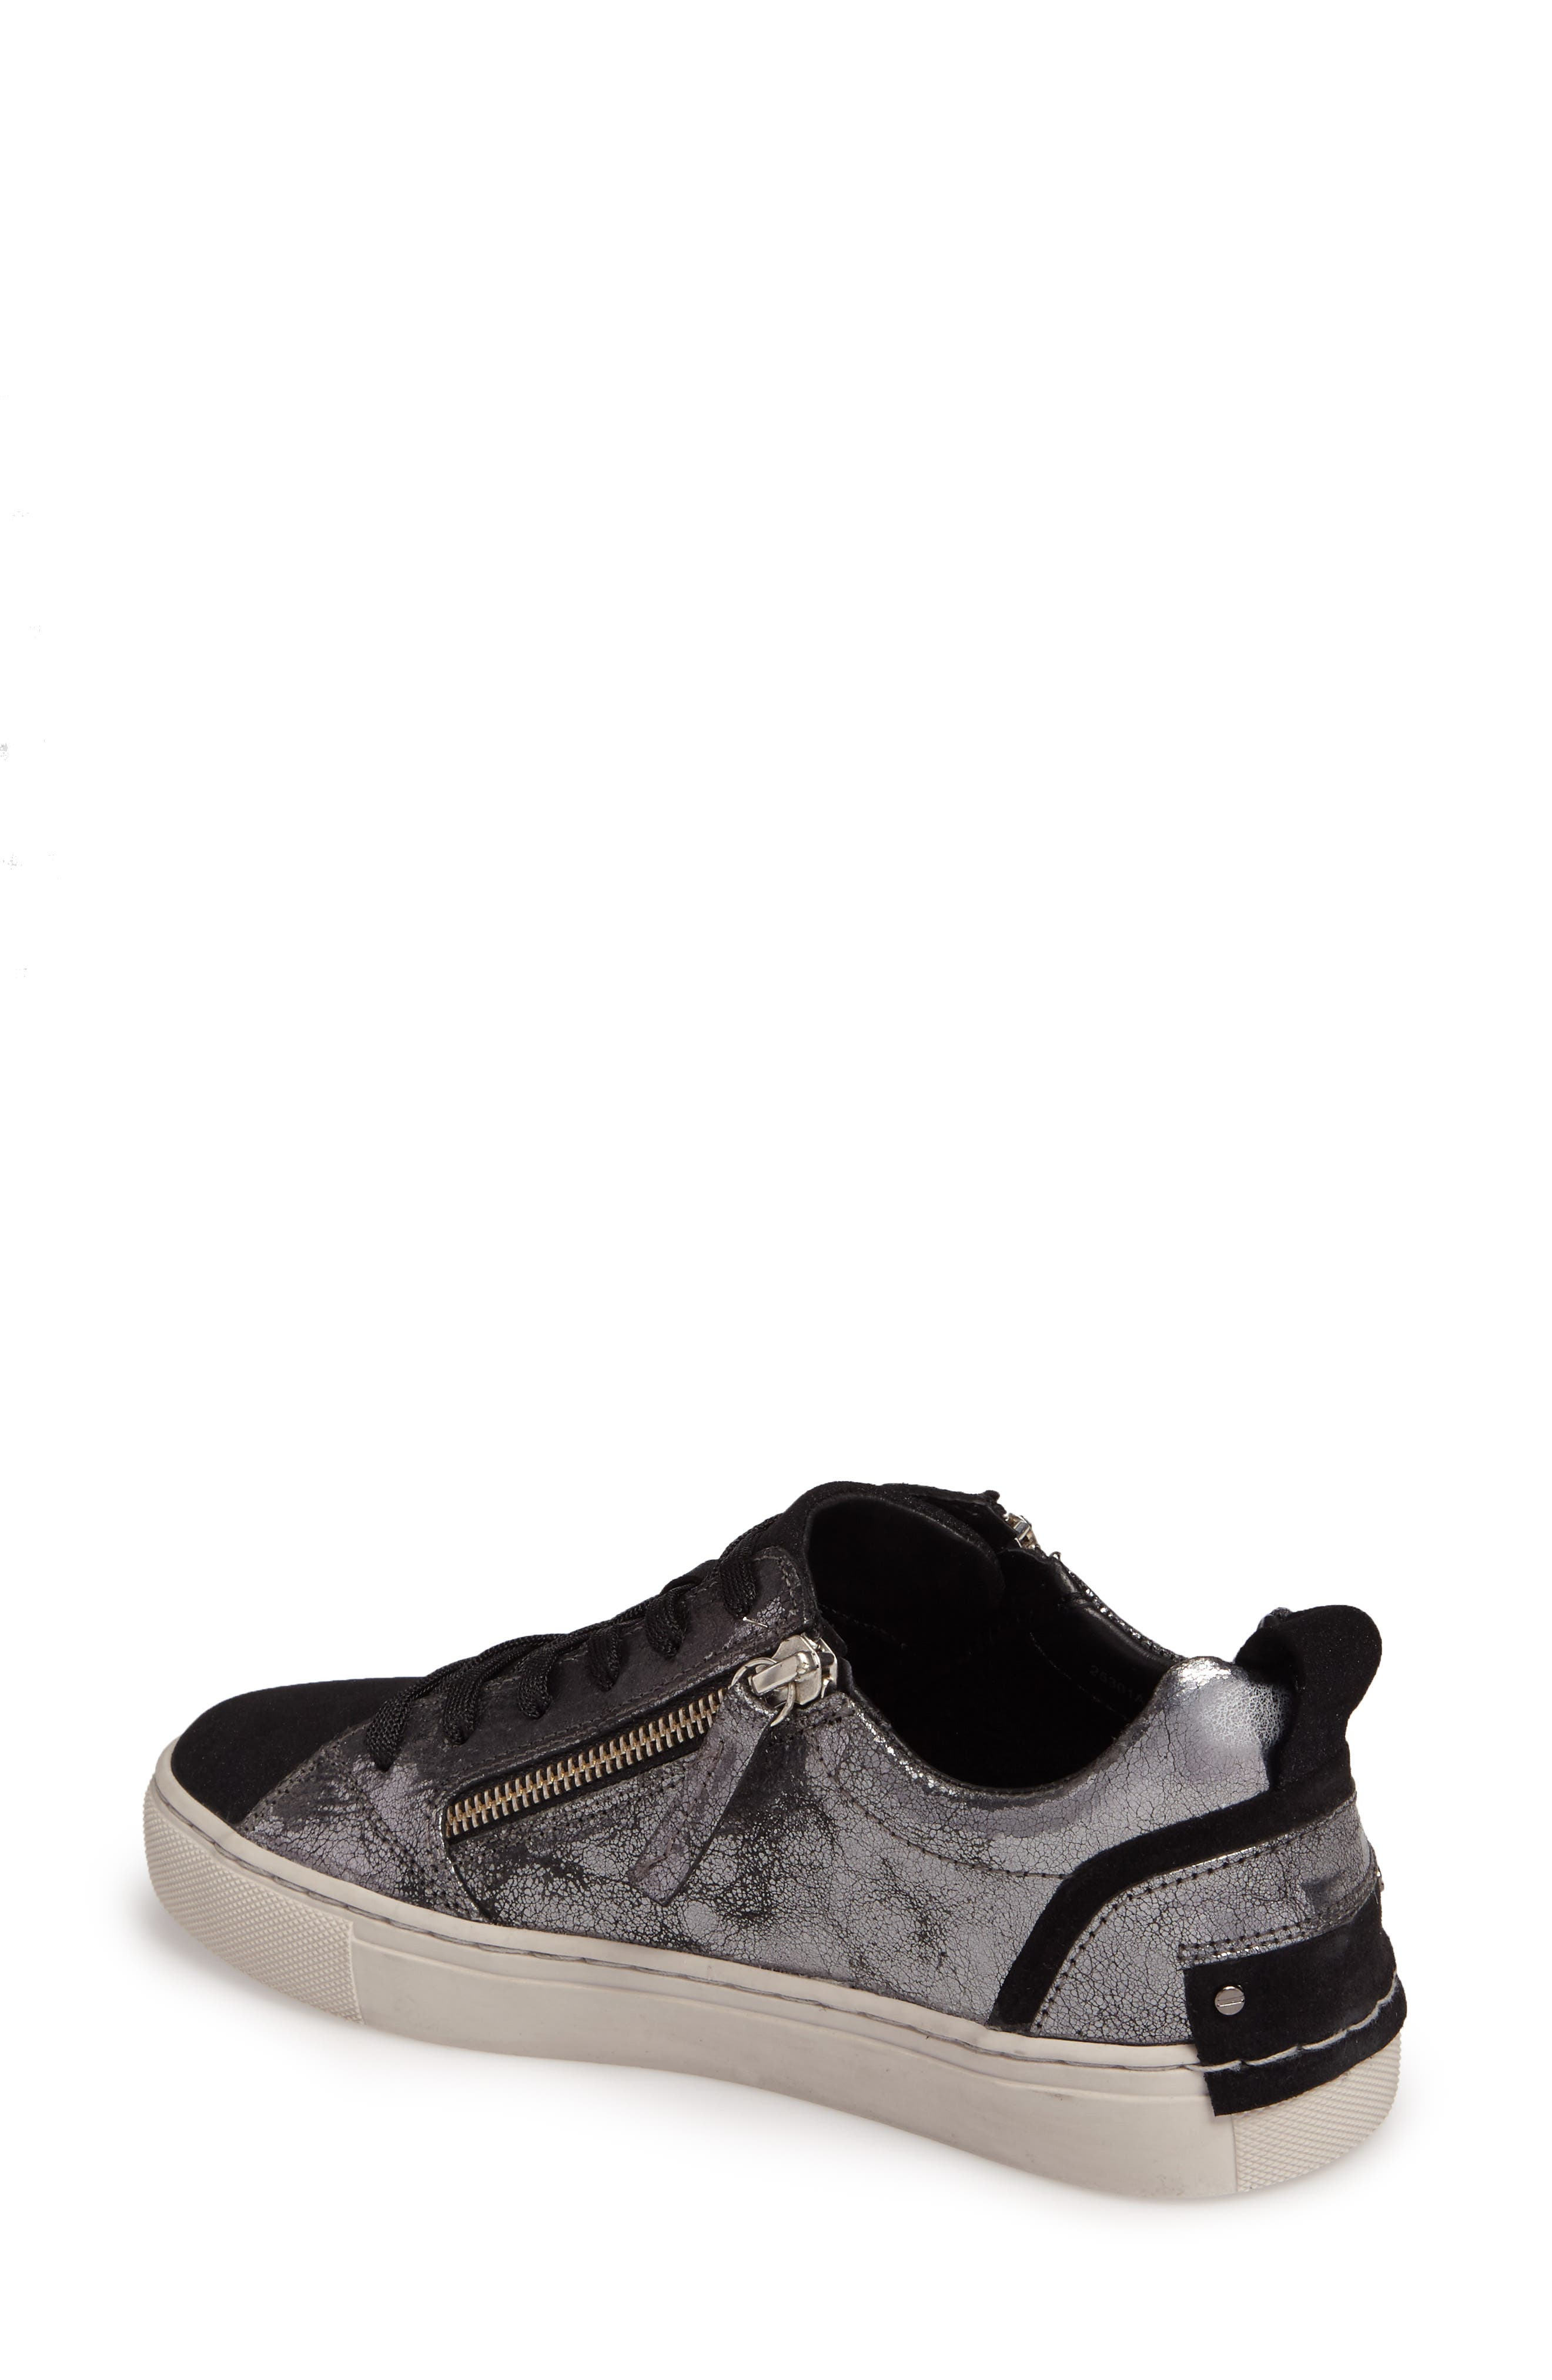 Java Lo Sneaker,                             Alternate thumbnail 2, color,                             Pewter - 25